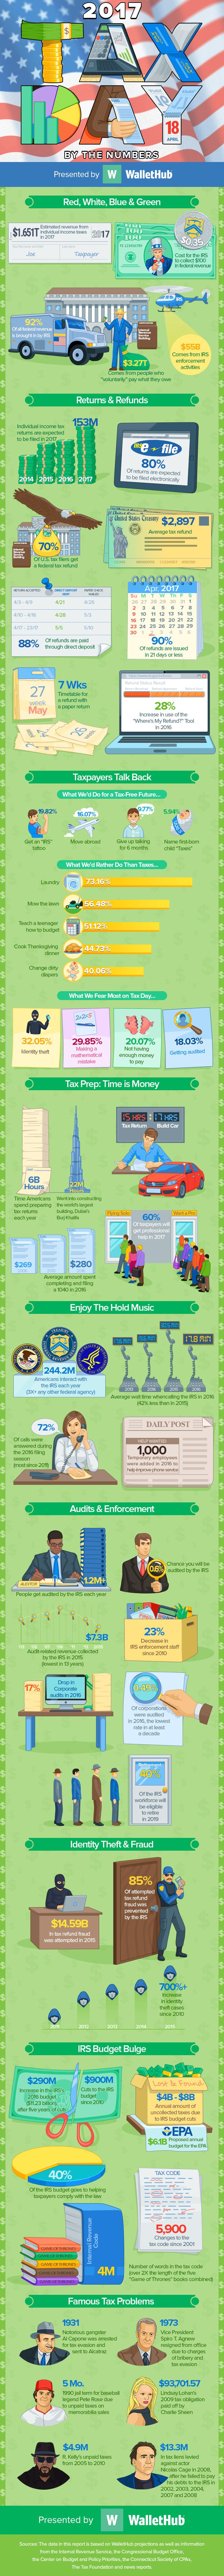 With Tax Day just over a week away, the personal finance website WalletHub released its Tax Day By The Numbers report, which features an infographic filled with fun facts about tax season as well as taxpayer resources.